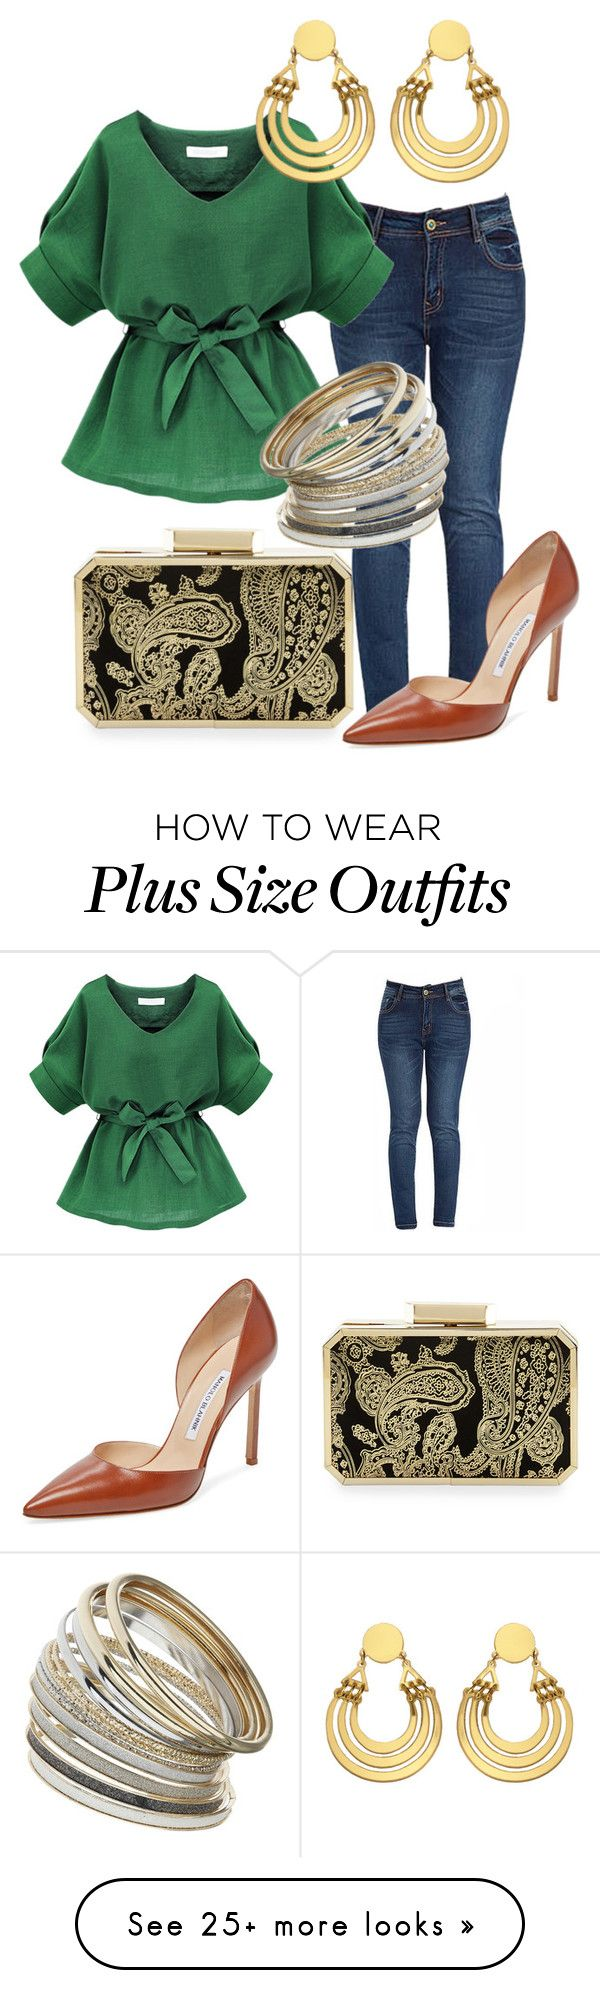 """New York Avenue"" by sevenspringswellness on Polyvore featuring Badgley Mischka, Miss Selfridge, Manolo Blahnik, women's clothing, women, female, woman, misses and juniors"